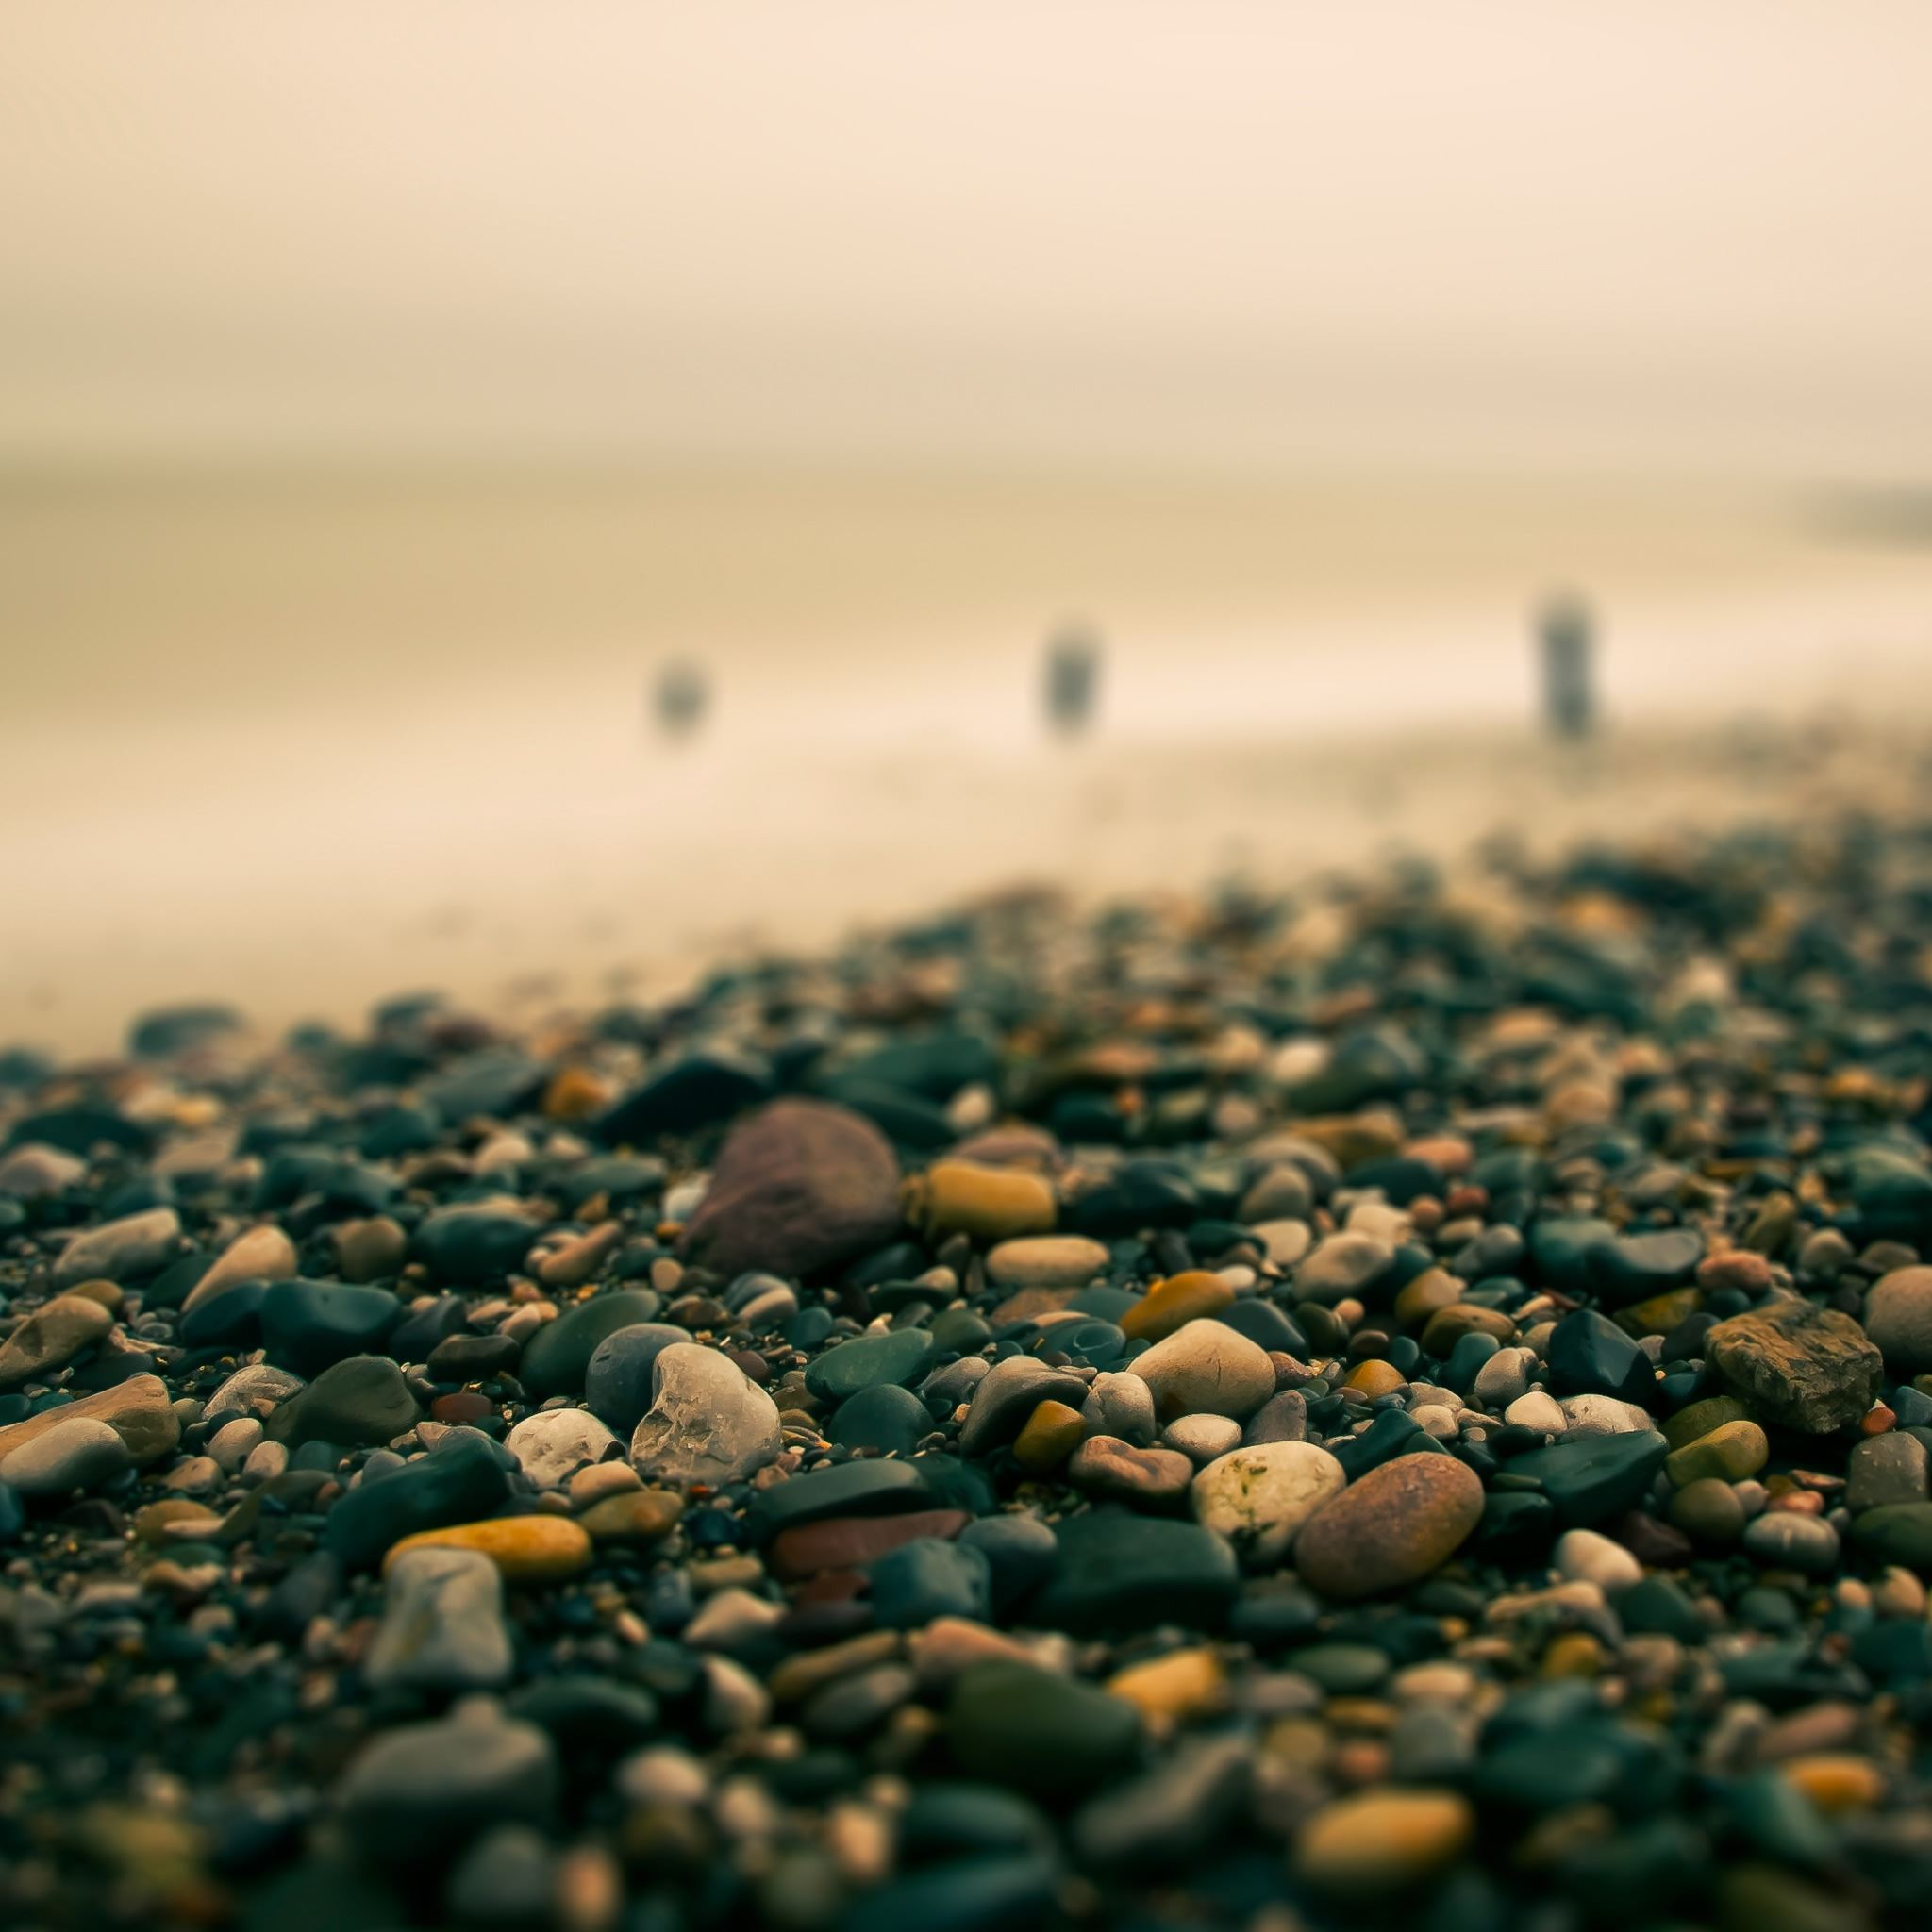 Beach Pebbles Autumn iPad Air wallpaper